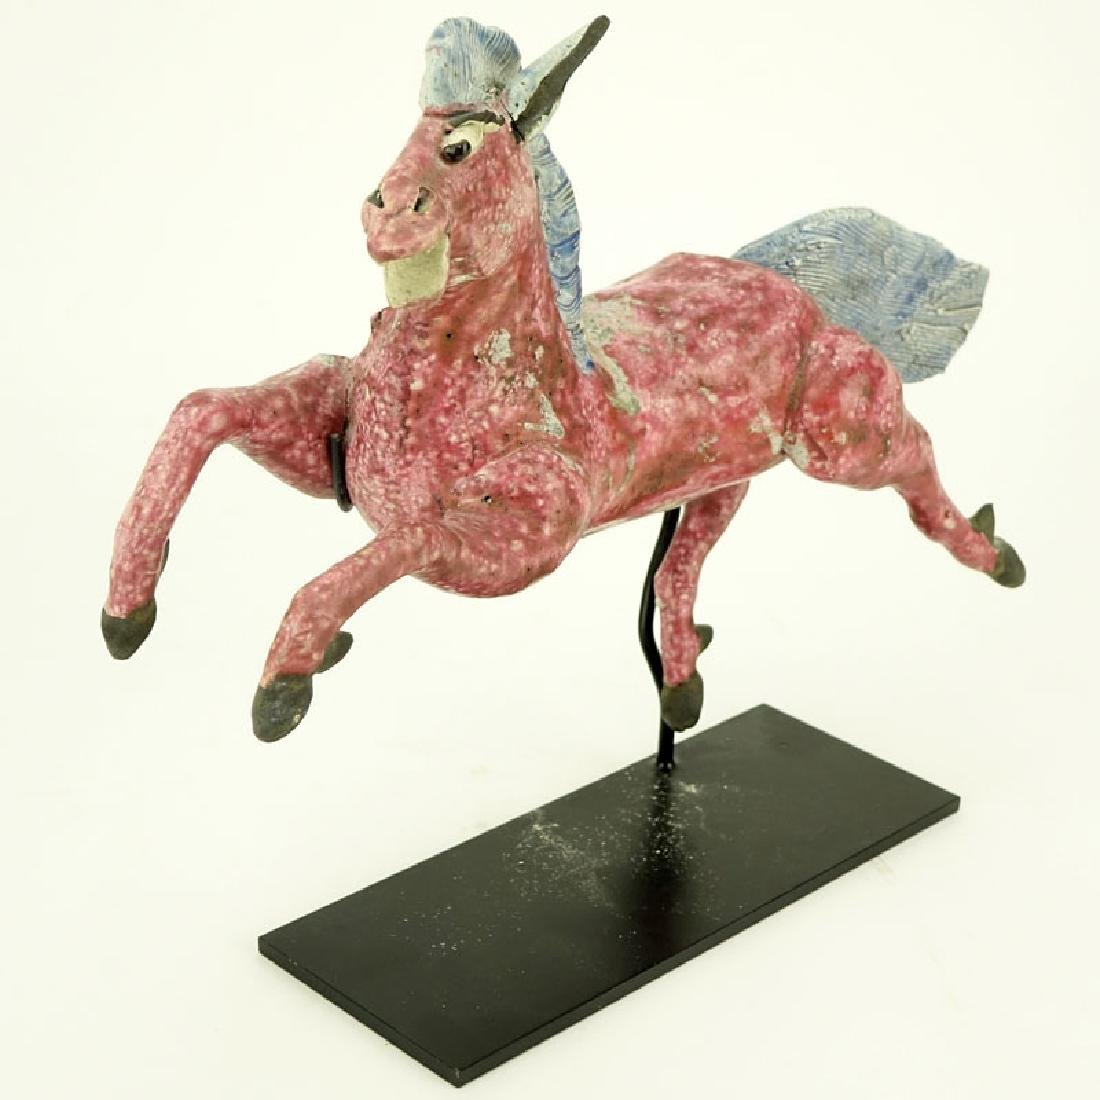 Antique Chinese Glazed Pottery Roof Tile Figurine of a